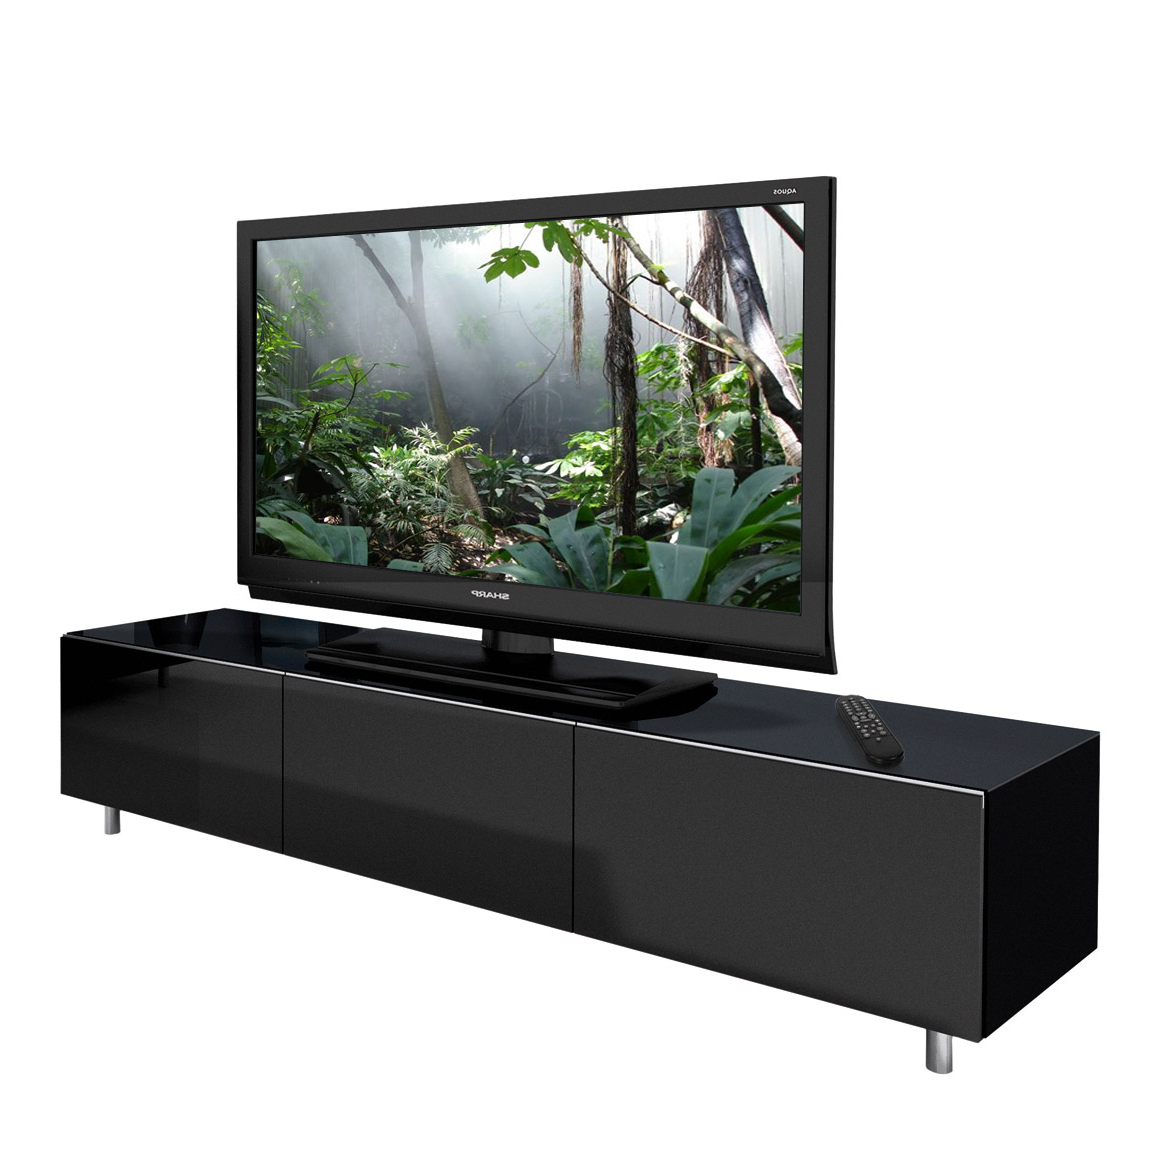 Spectral Just Racks Jrl1650S Gloss Black Tv Cabinet – Just Racks Regarding Popular Black Gloss Tv Units (View 18 of 20)